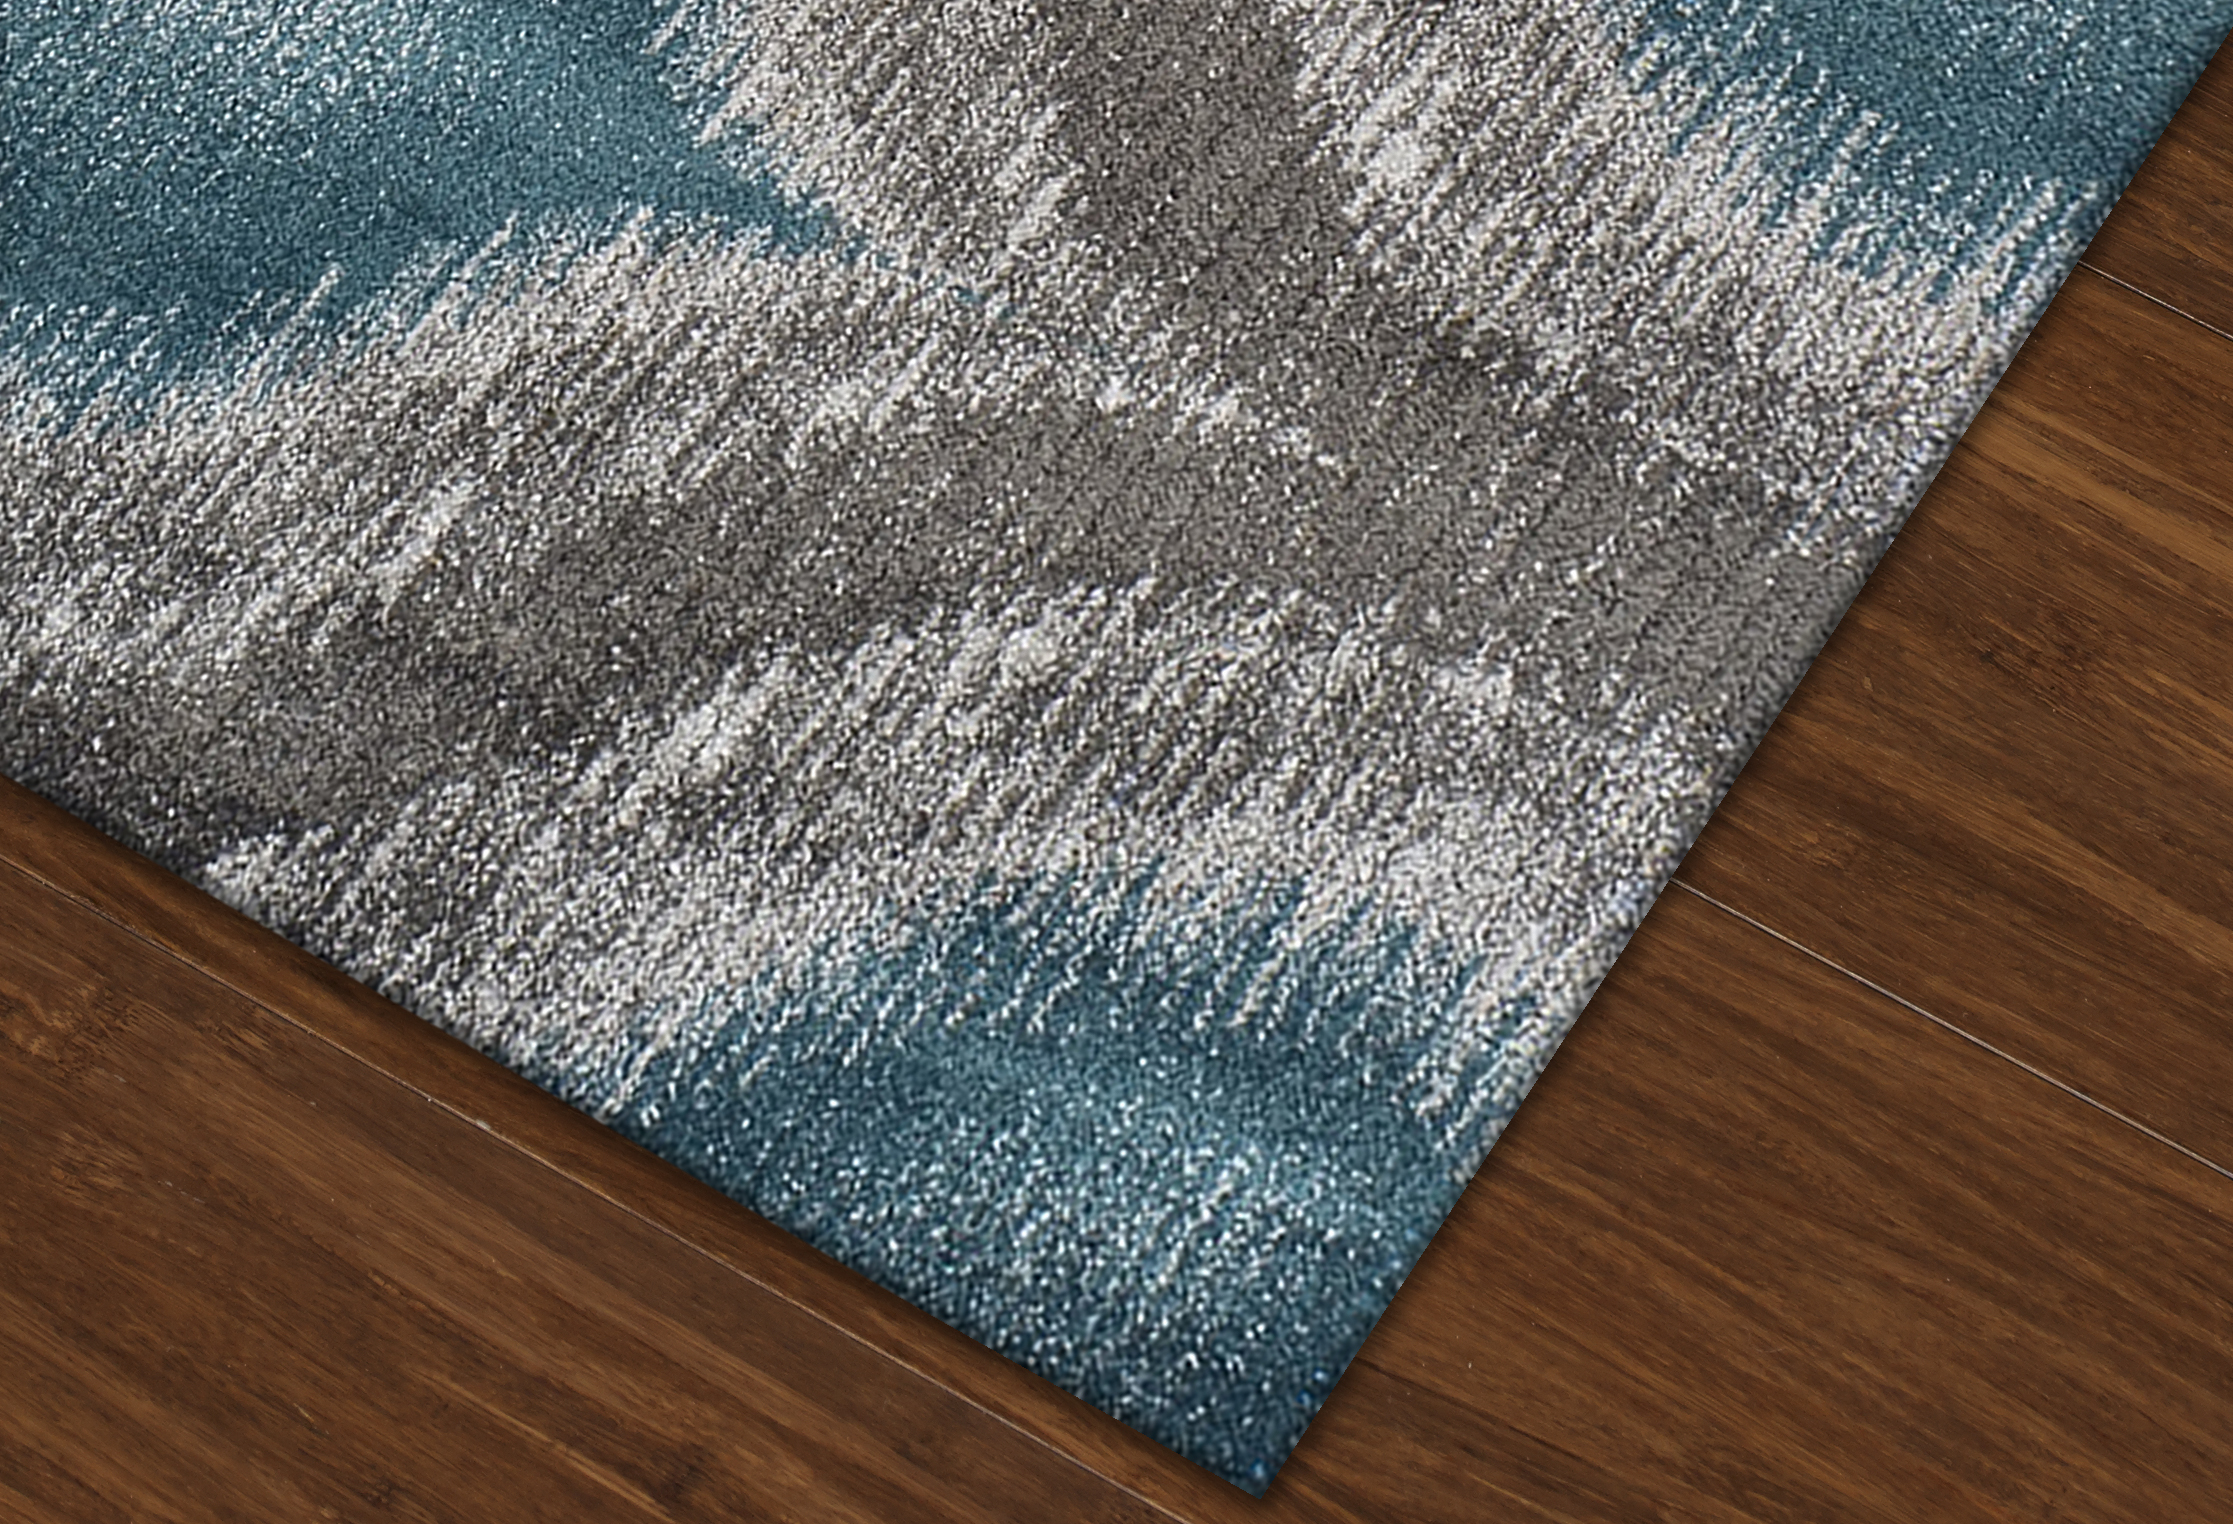 Modern Grey Teal Premium Polypropylene Rug Soft and  : CloseupMG4441TEAL from www.abodeandcompany.com size 2233 x 1524 jpeg 2357kB